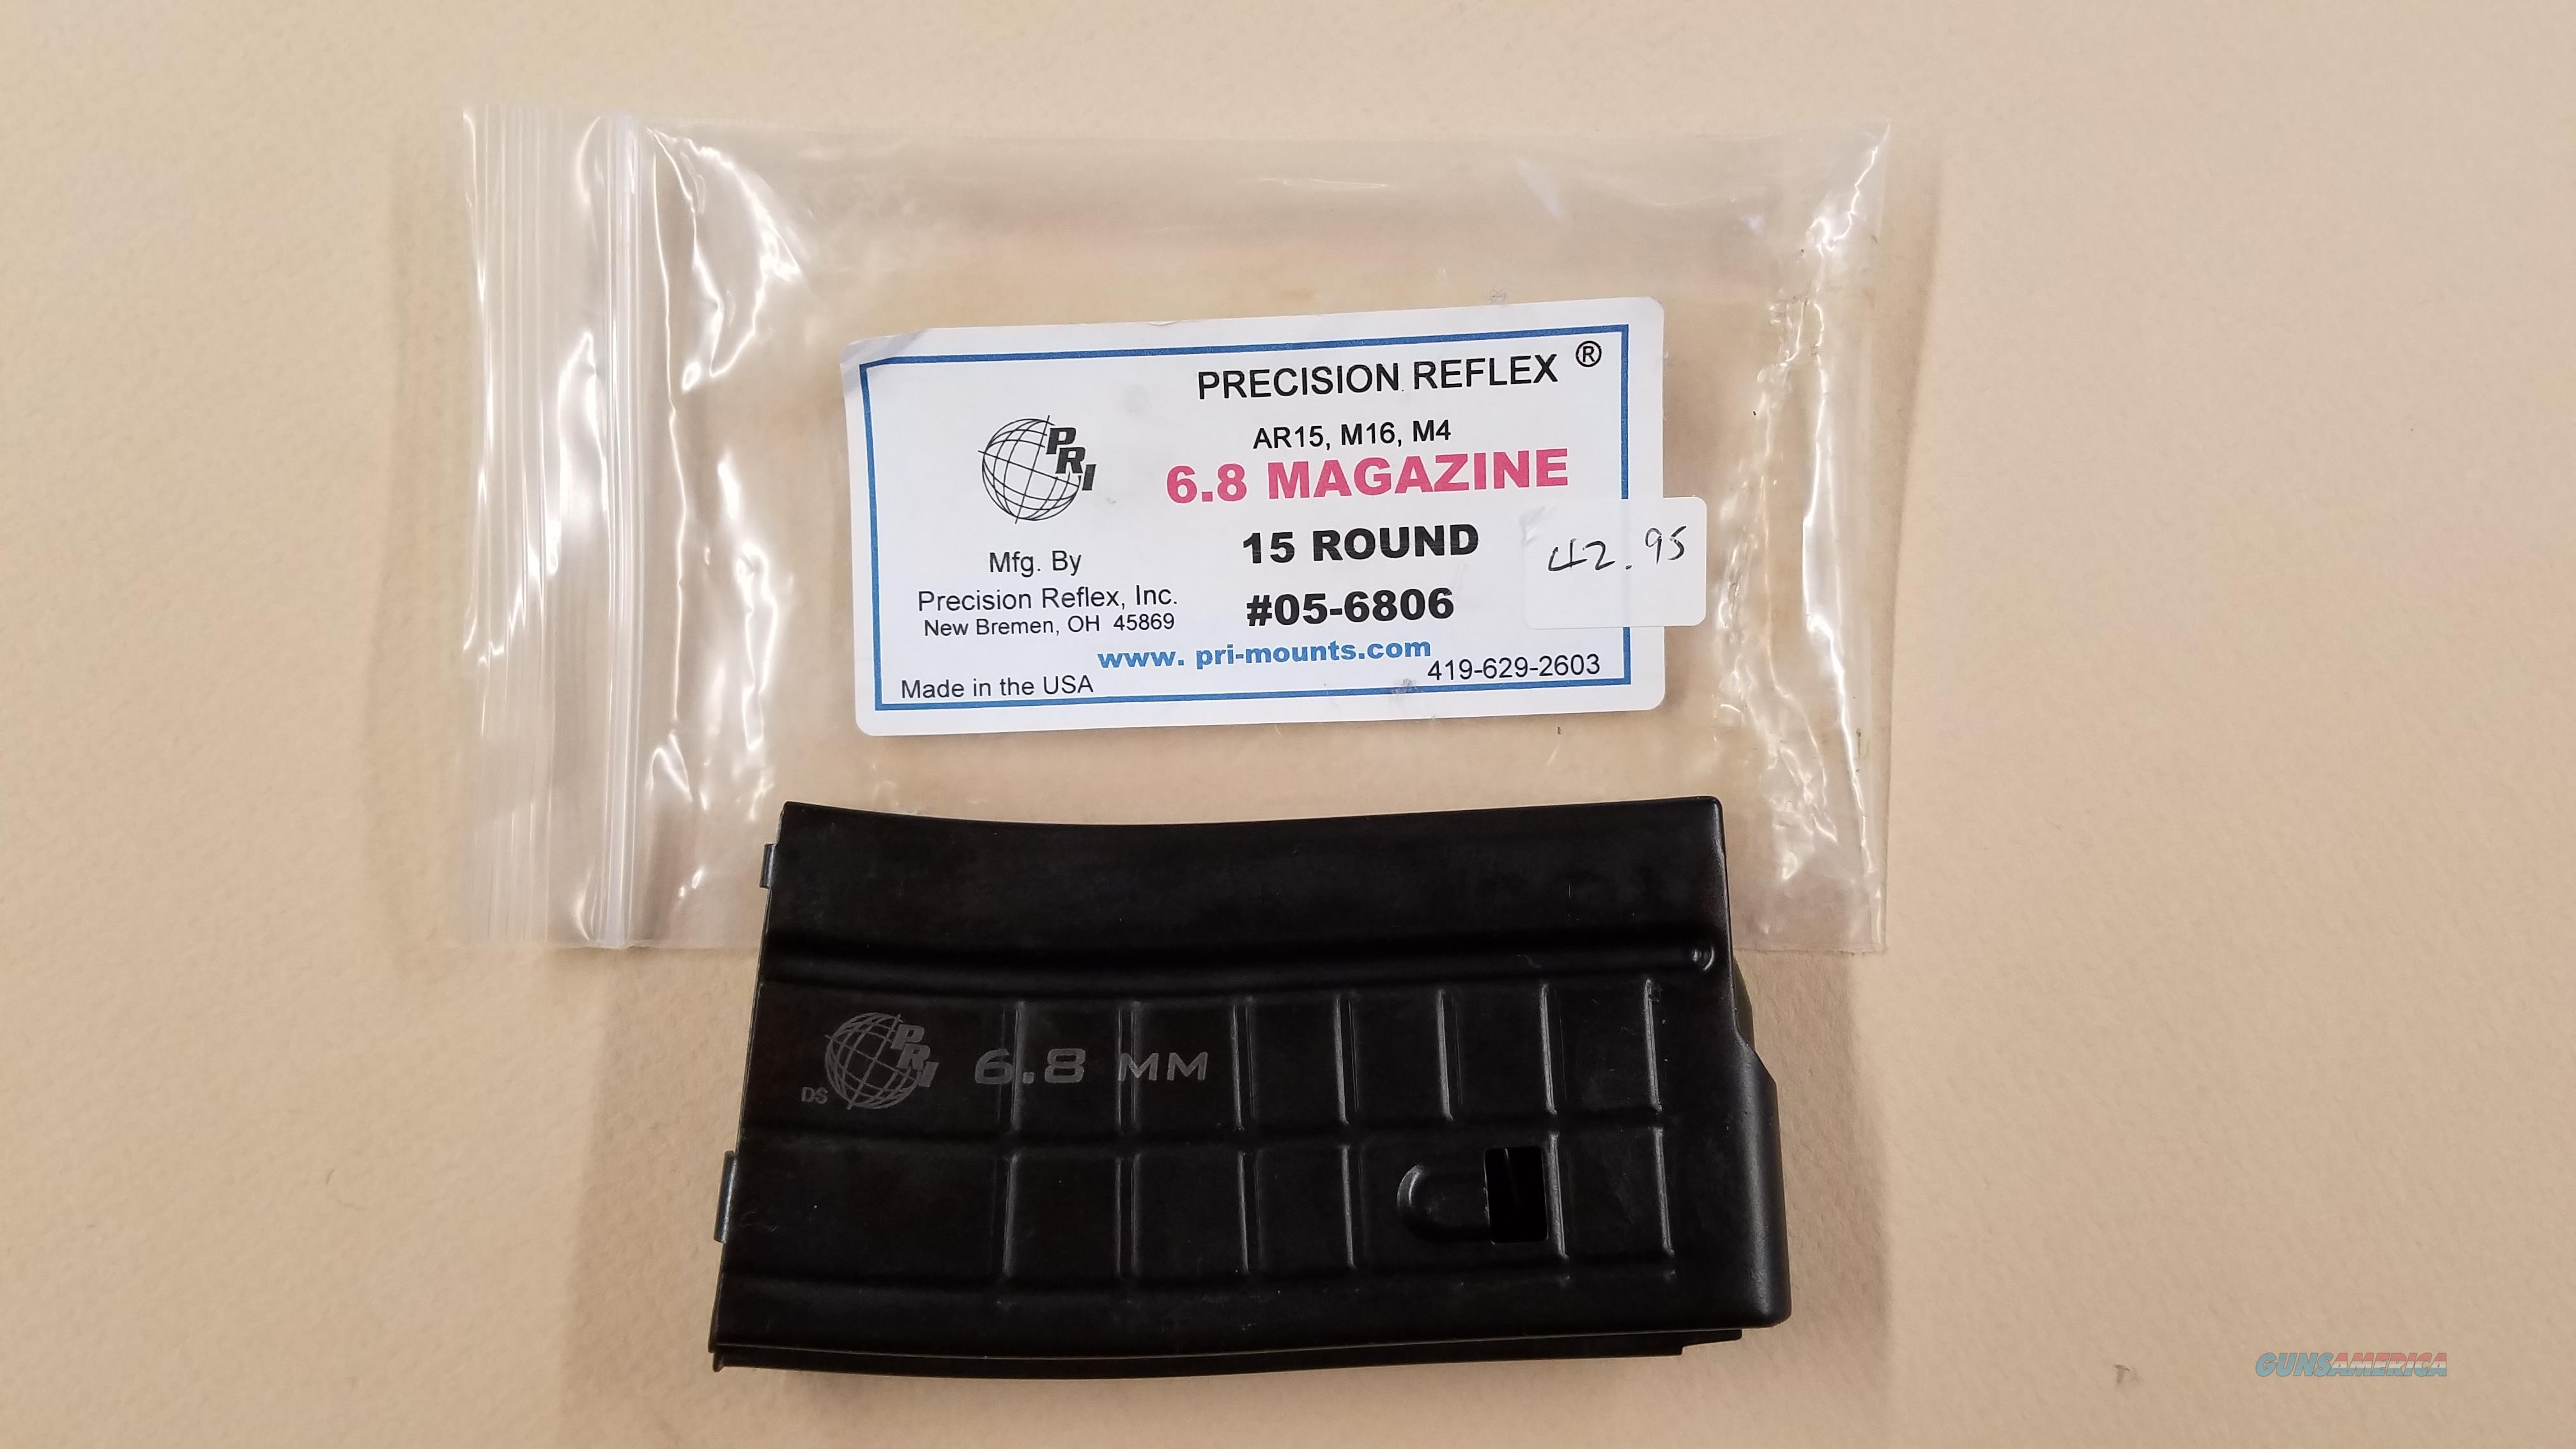 PRECISION RELEX 6.8 15 ROUND MAGAZINE  Non-Guns > Magazines & Clips > Rifle Magazines > AR-15 Type